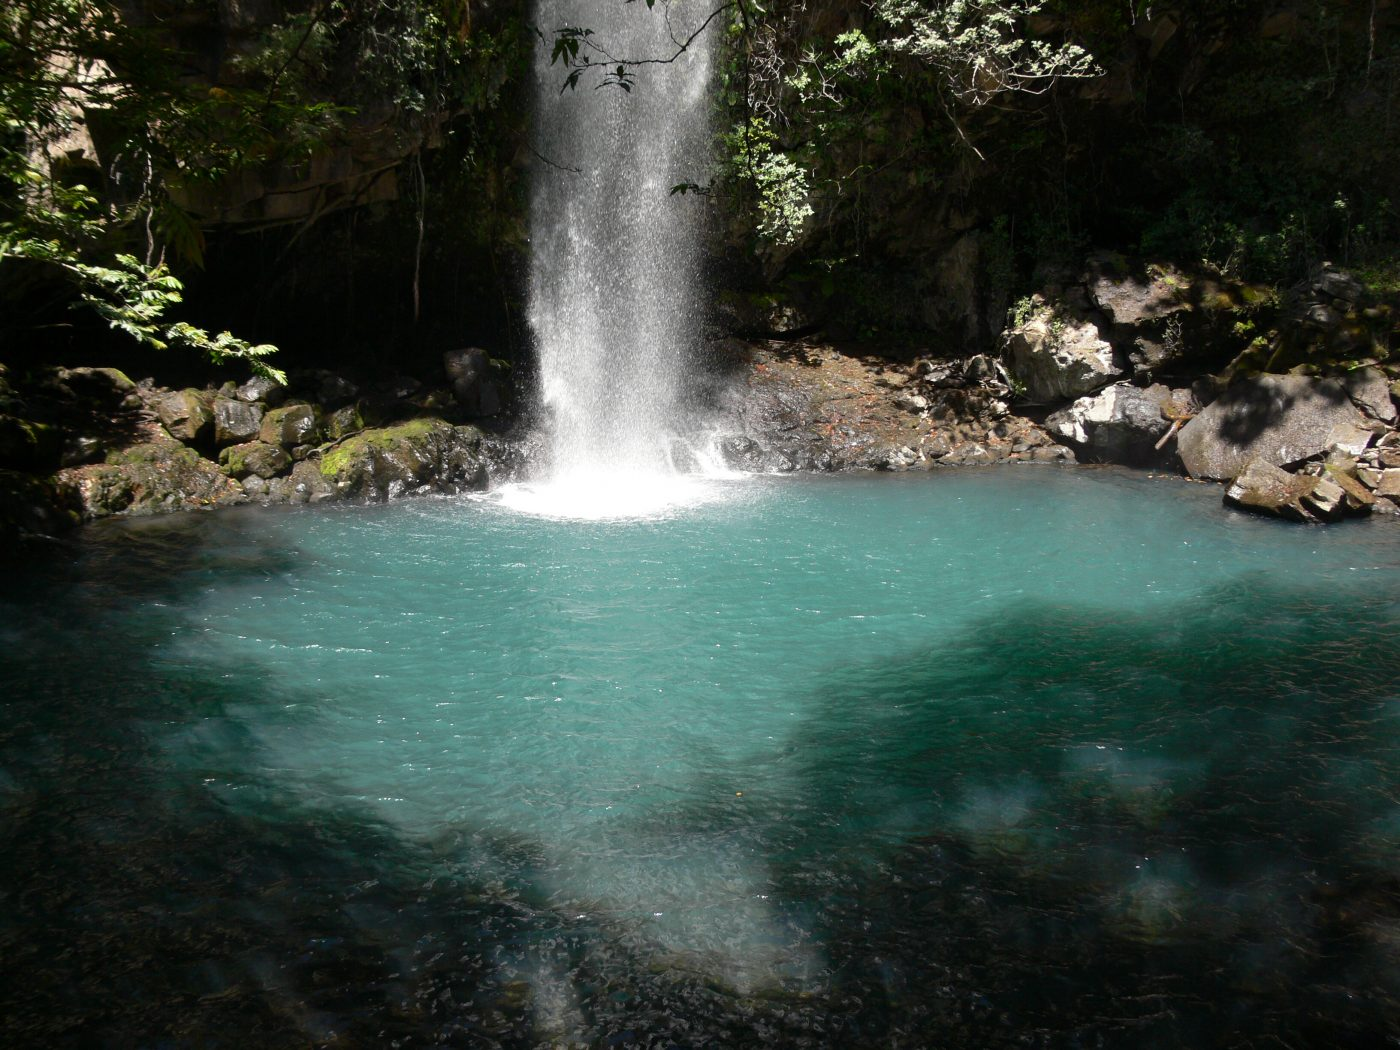 Waterfall in Rincon de la Vieja National Park, Costa Rica